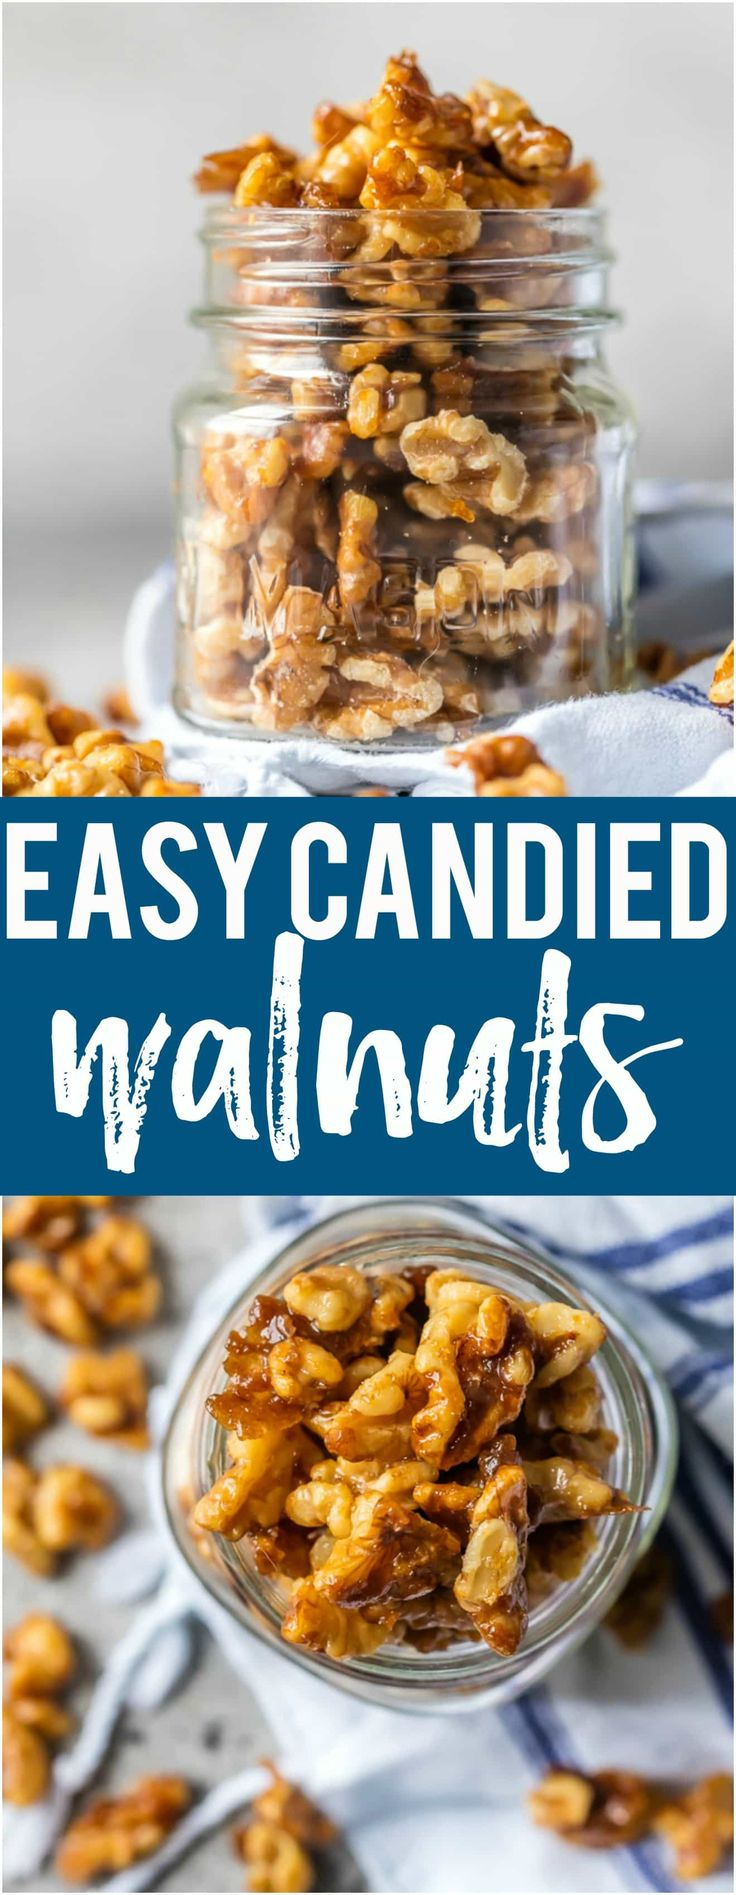 These Easy Candied Walnuts are awesome for holiday appetizers, baking, snacking, and so much more. Made in under 5 minutes and oh so tasty! #walnuts #snacks #christmas #holiday via @beckygallhardin